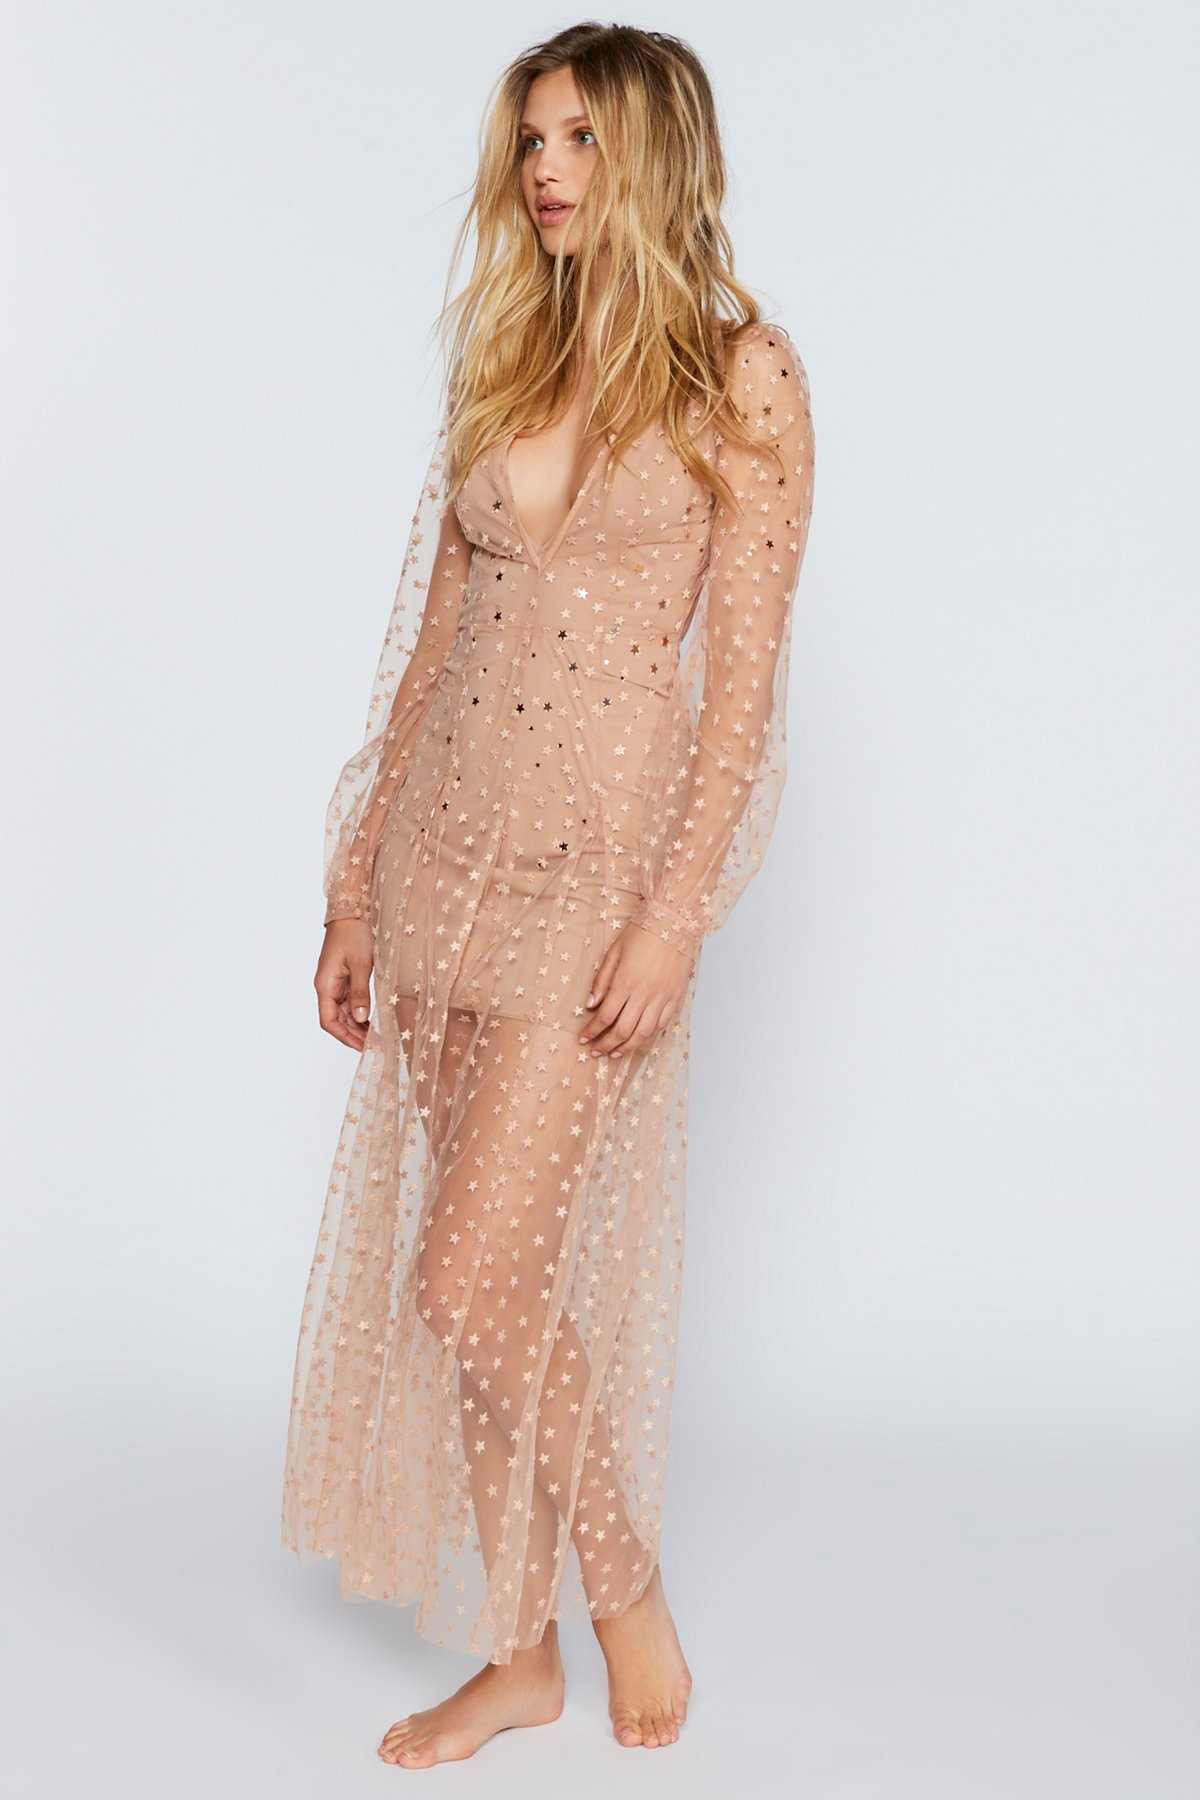 All That Glitters Tulle Maxi Dress